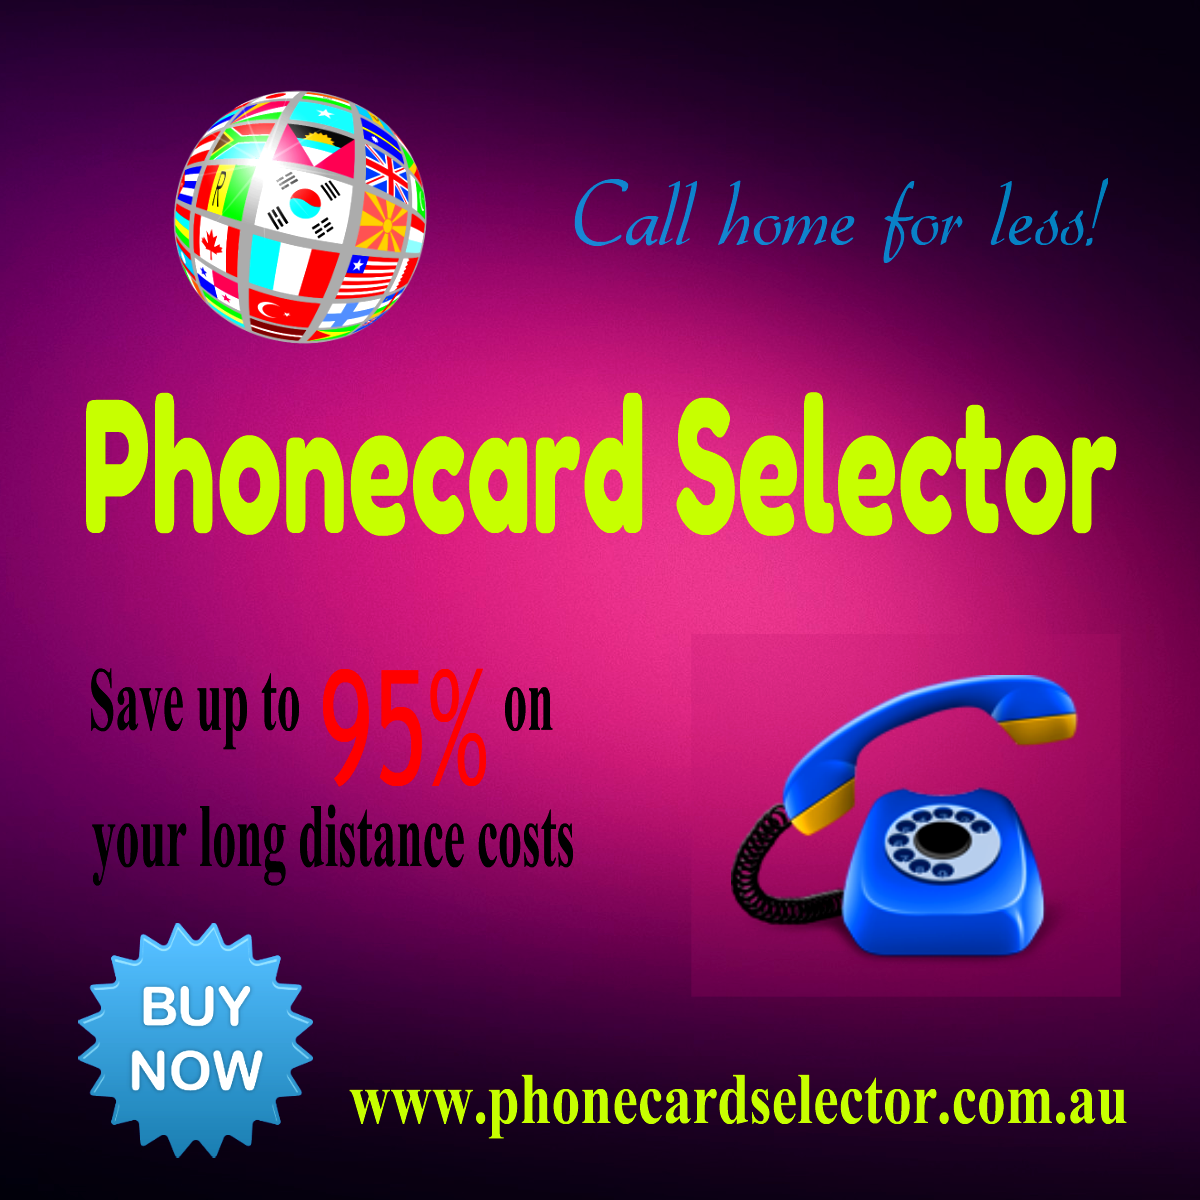 pinless calling cards are best to make international call - Pinless Calling Card